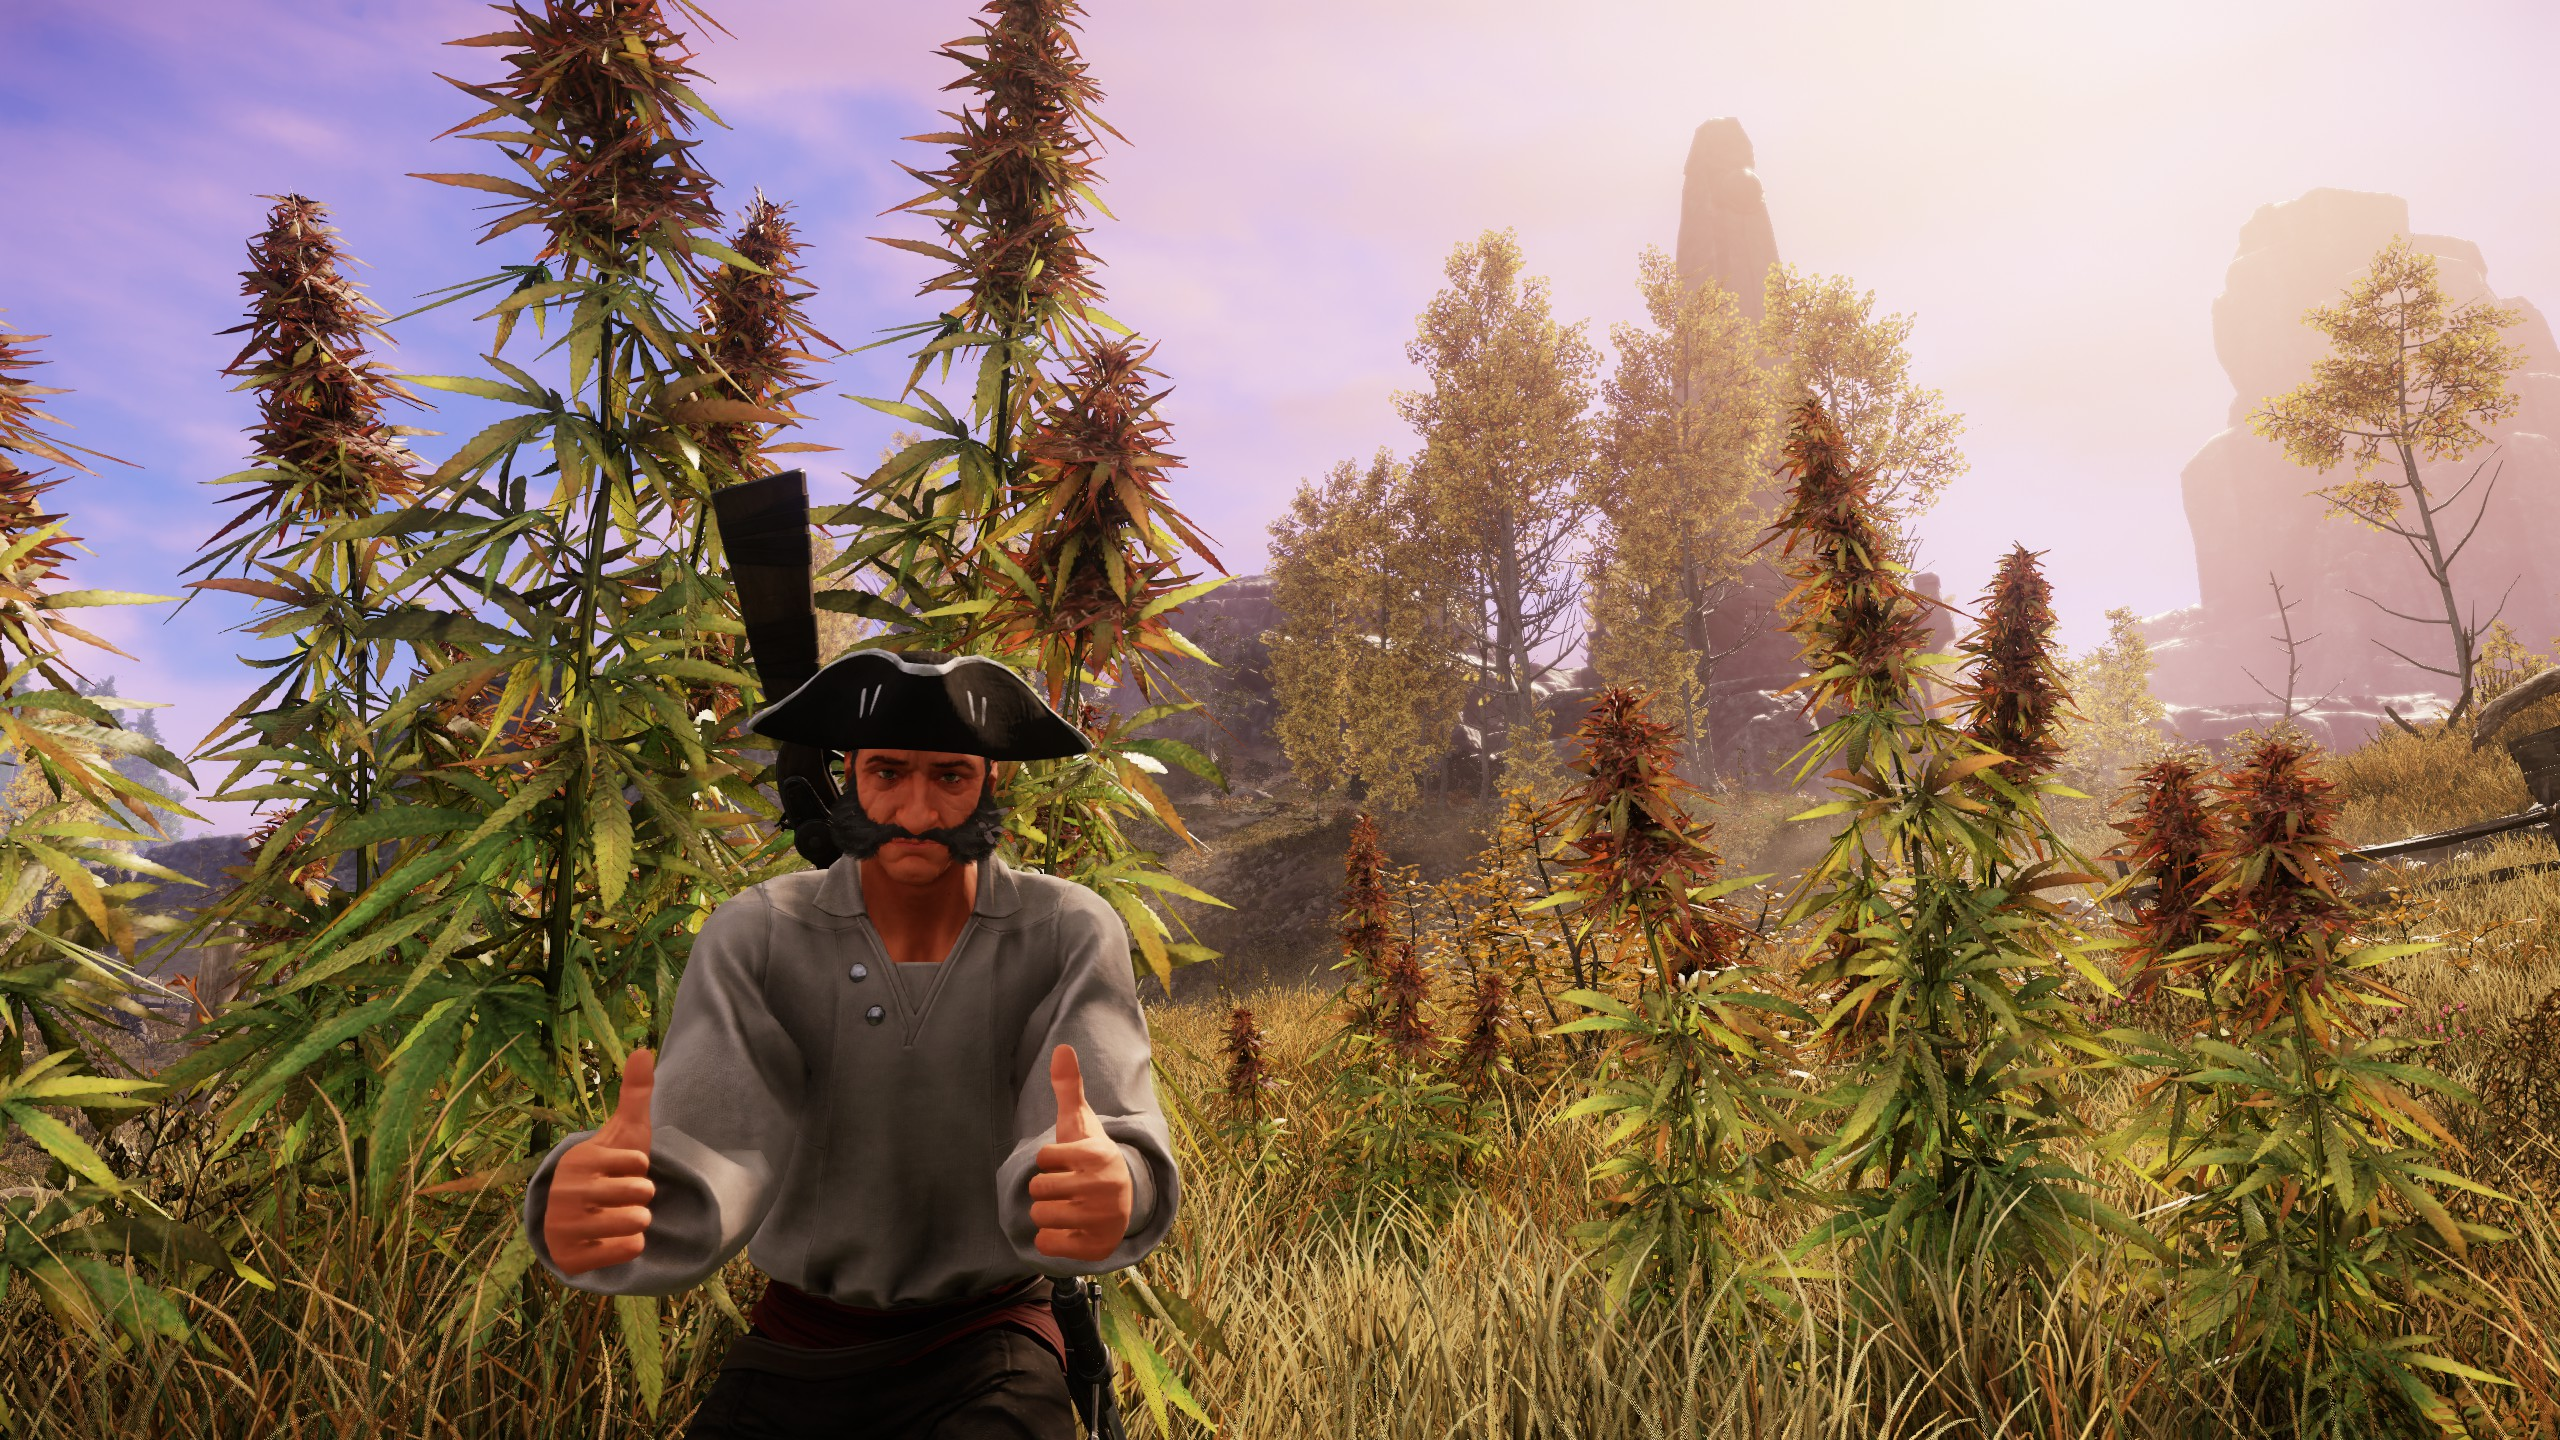 Giving the thumbs up in front of some hemp